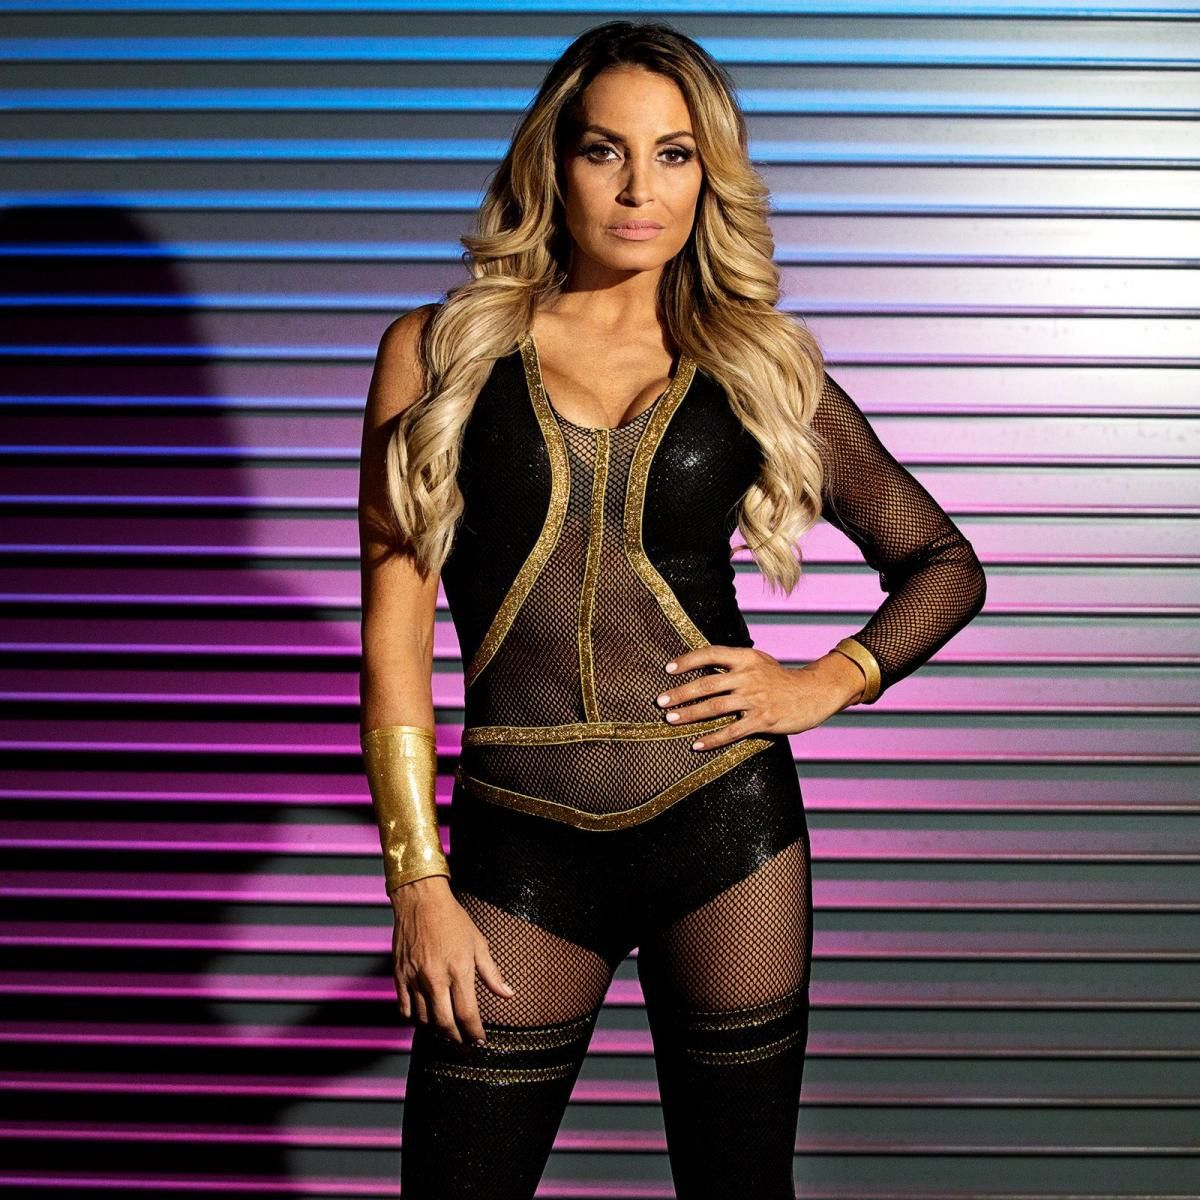 Trish Stratus To Make WWE Return For A Match Against Sasha Banks 1